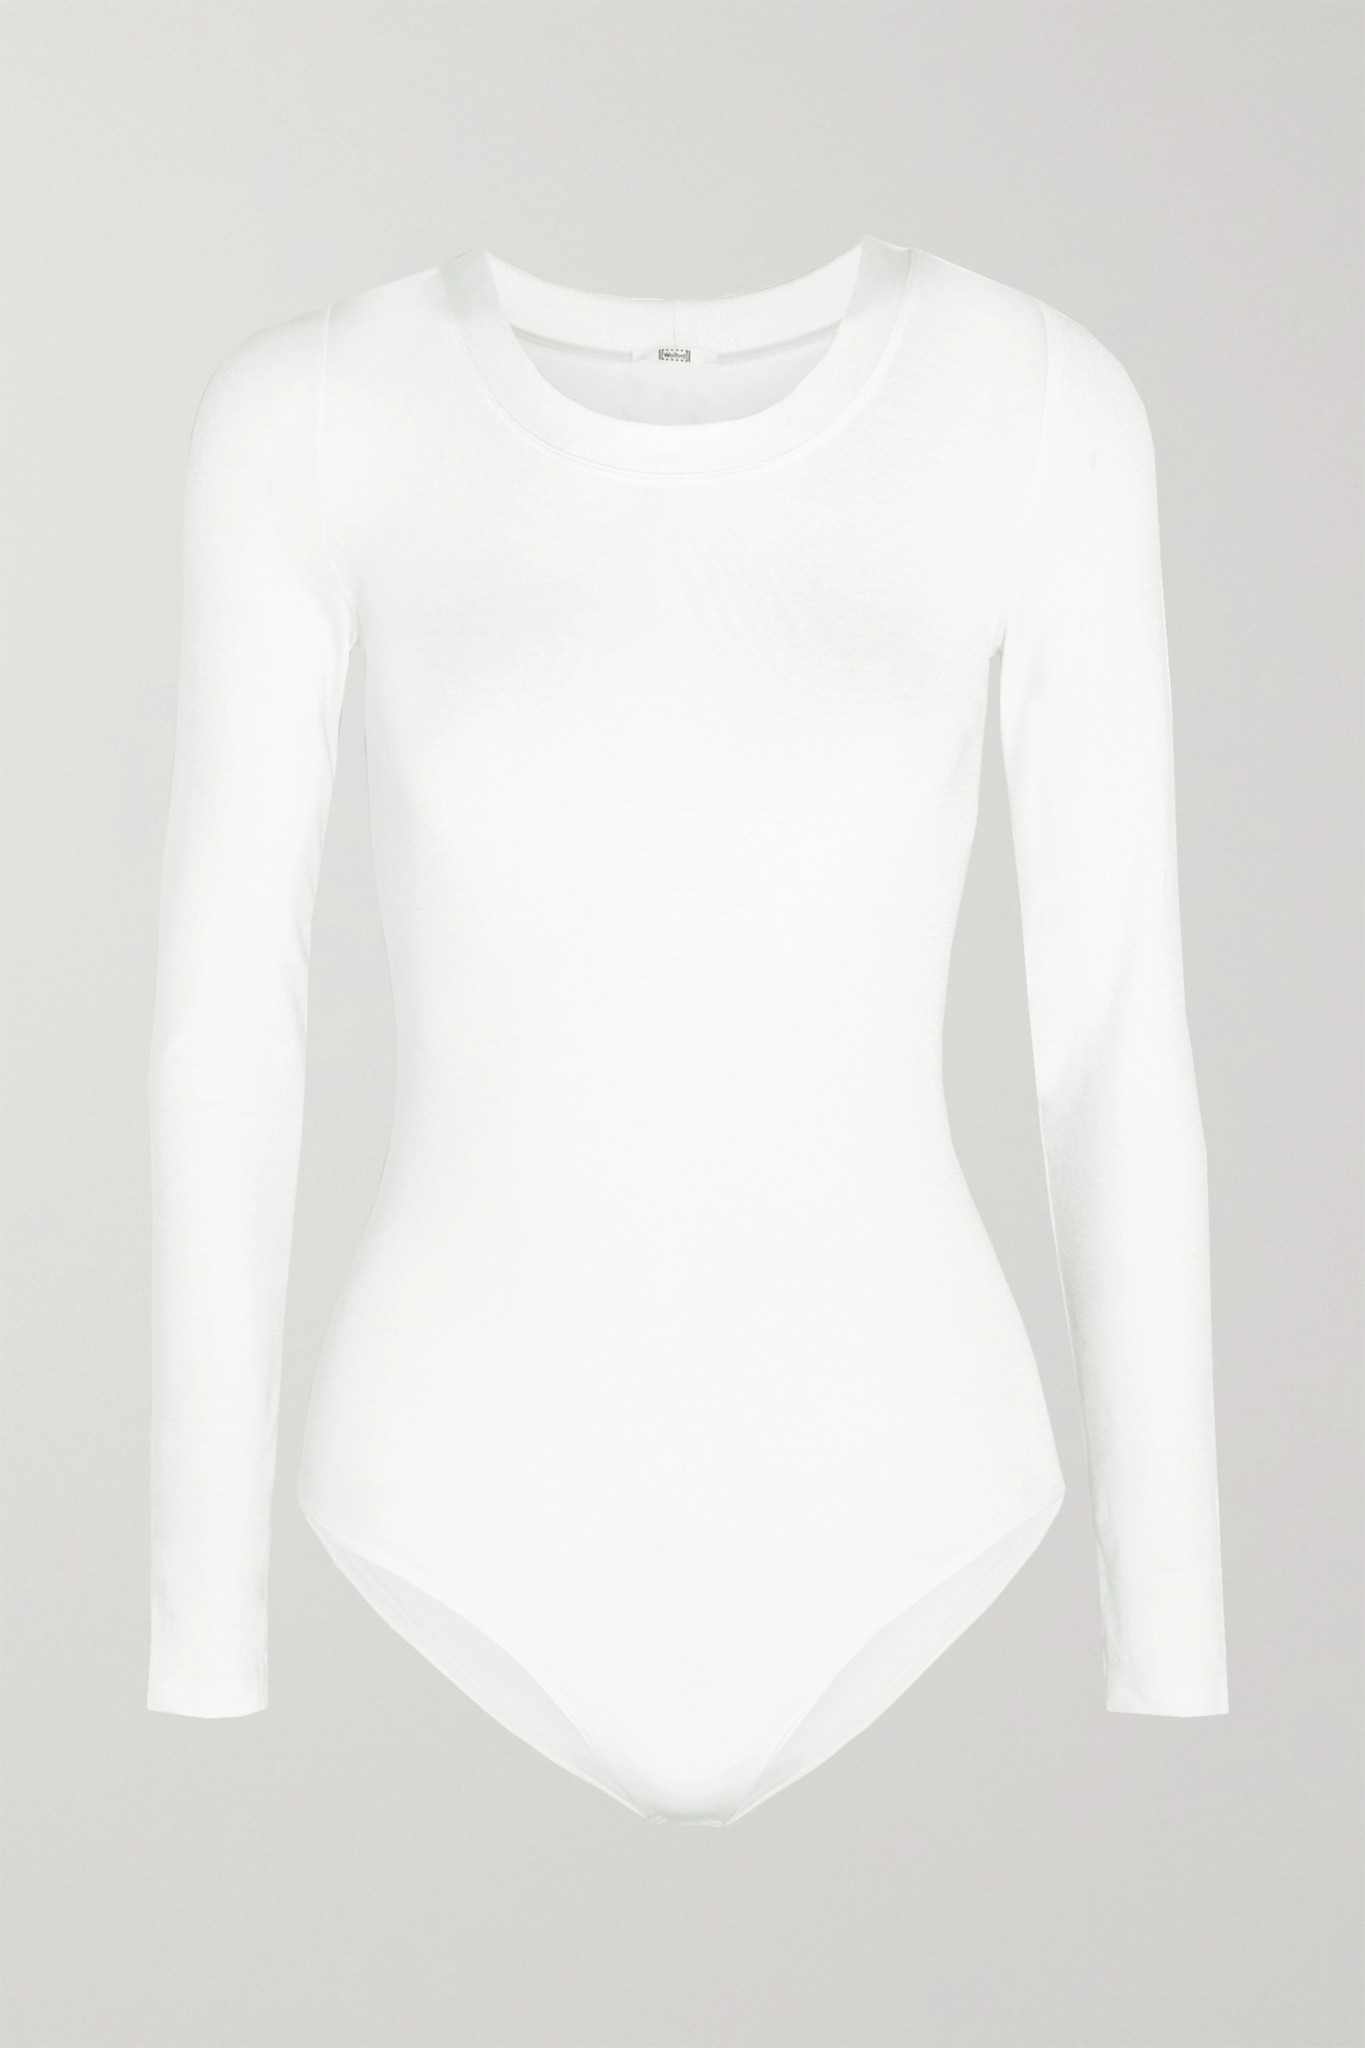 WOLFORD - Berlin Stretch-jersey Bodysuit - White - medium